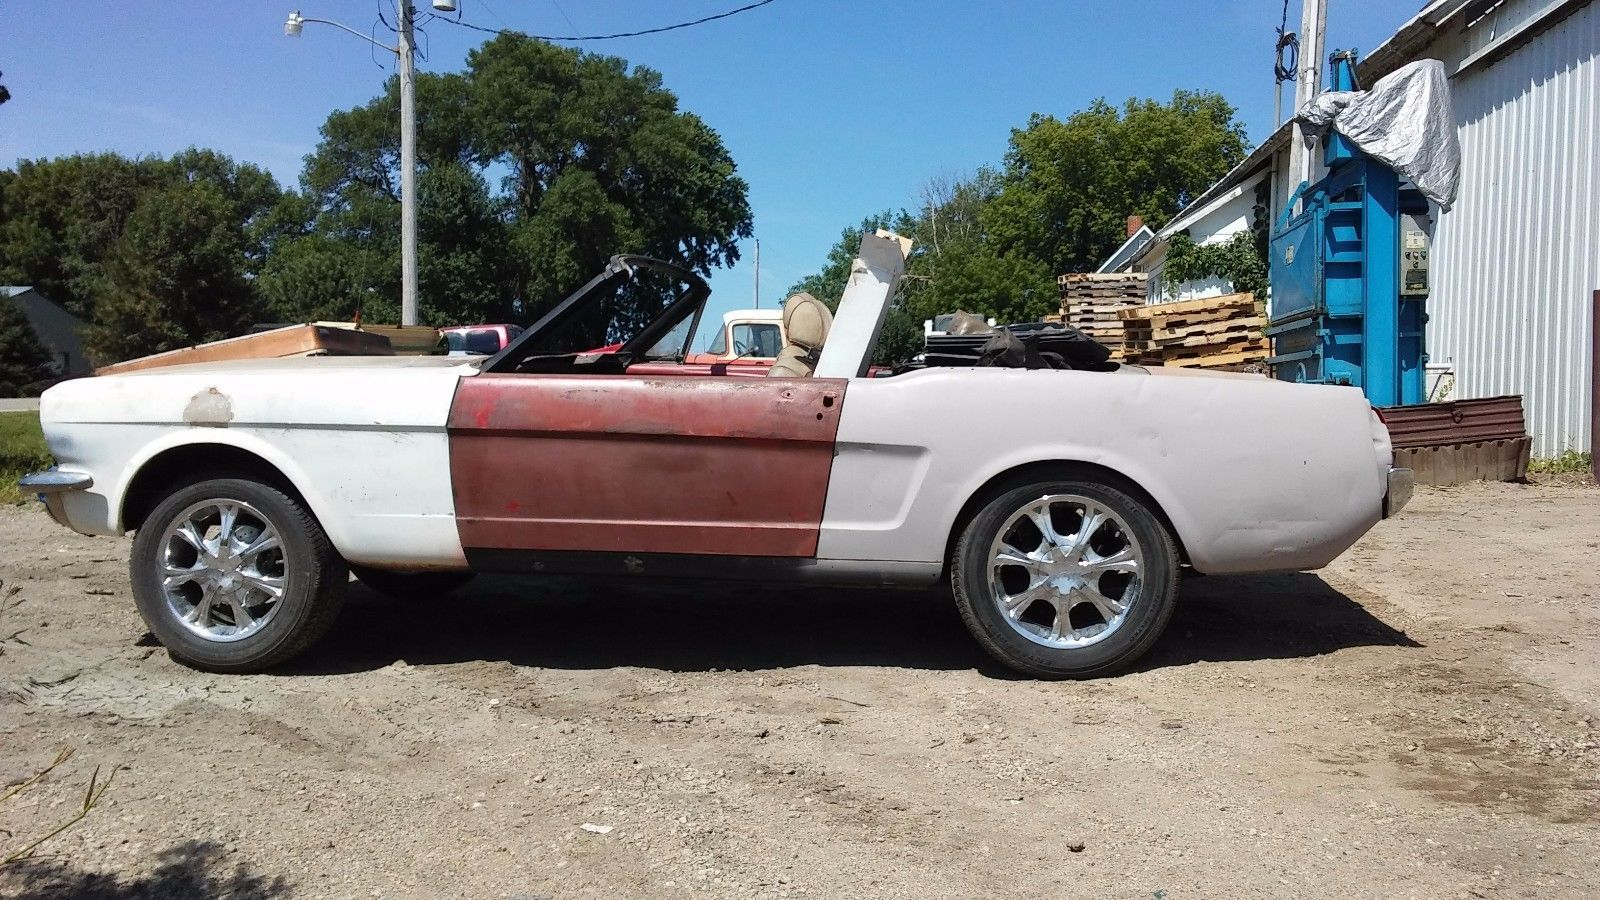 No drivetrain 1965 Ford Mustang CONVERTIBLE project | Project cars ...